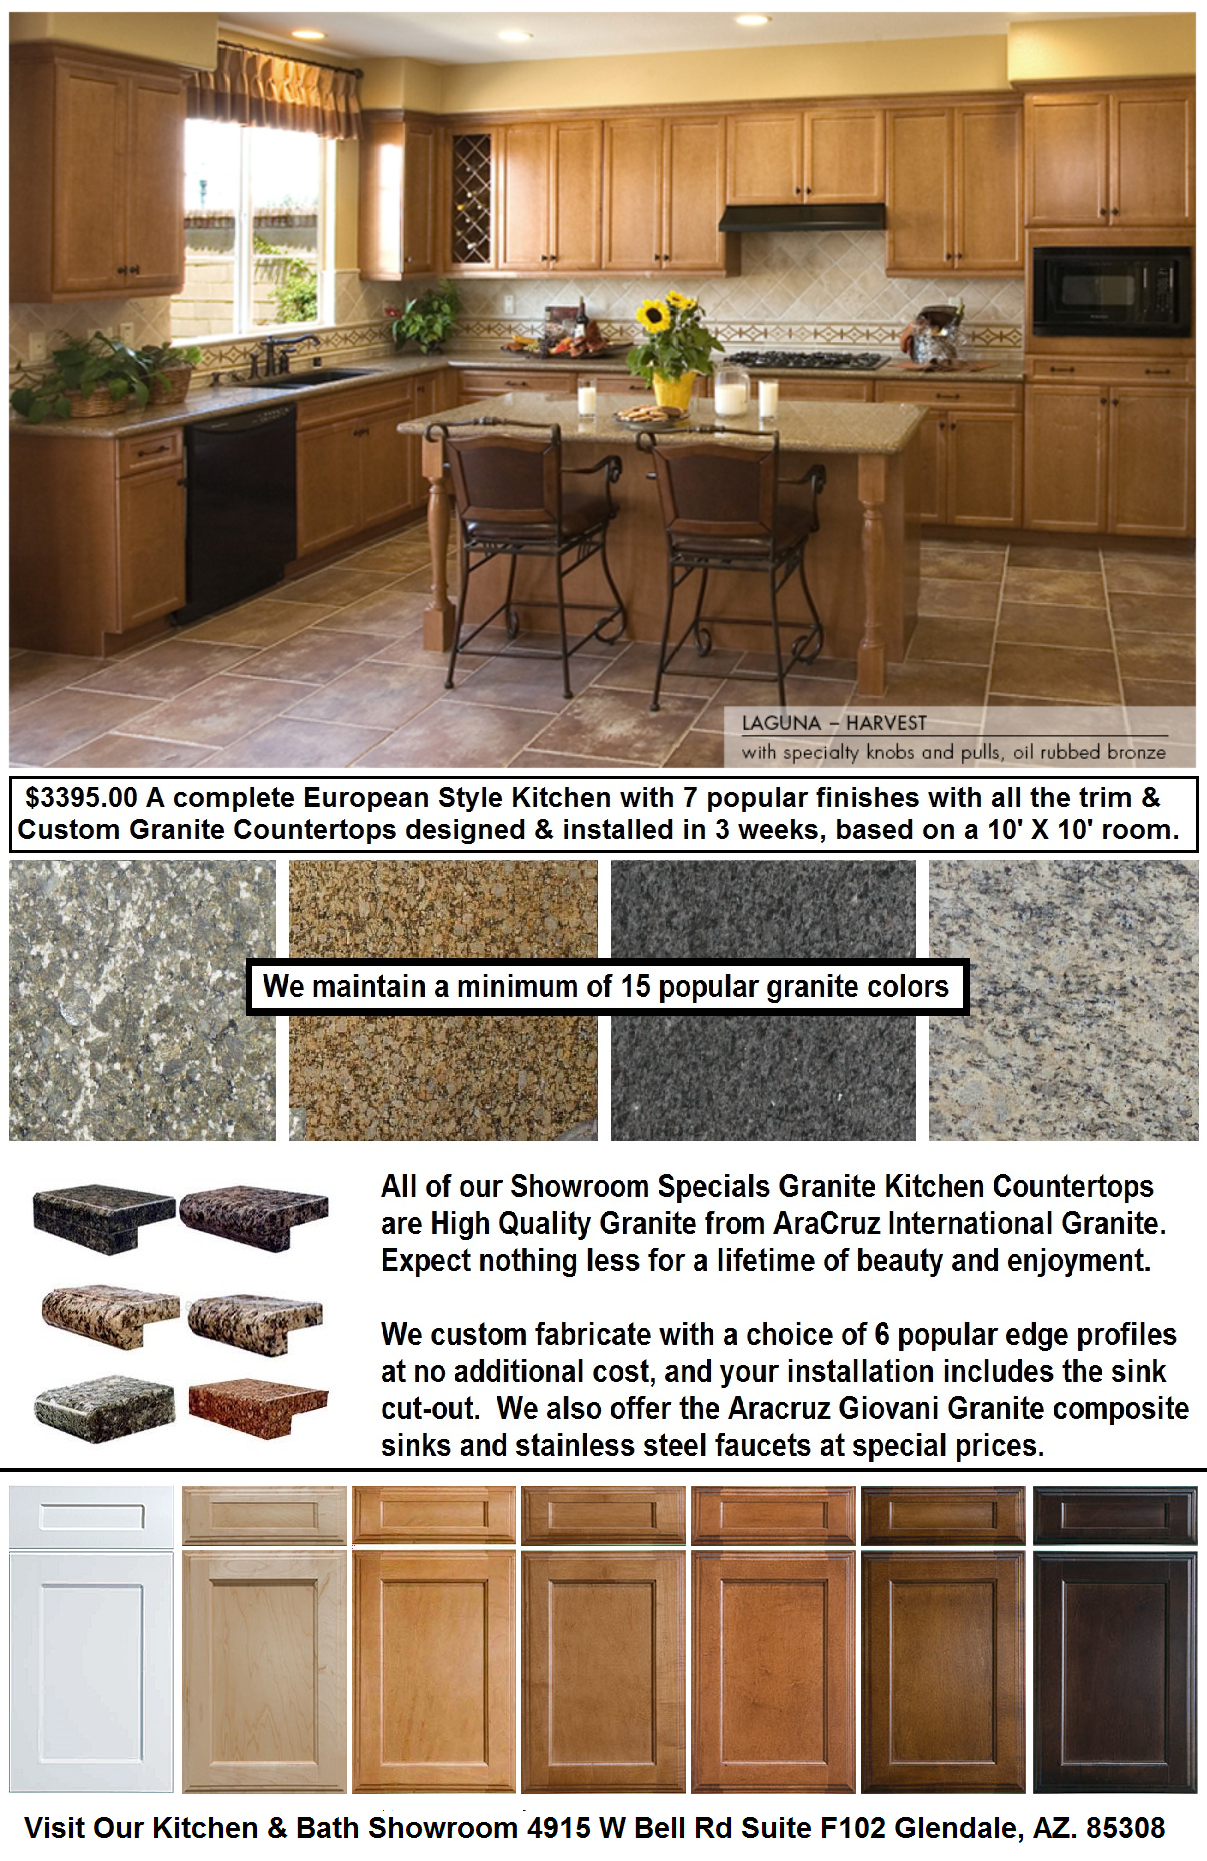 Granite Countertops On Sale : European Kitchen Cabinets Granite Countertops On Sale Phoenix